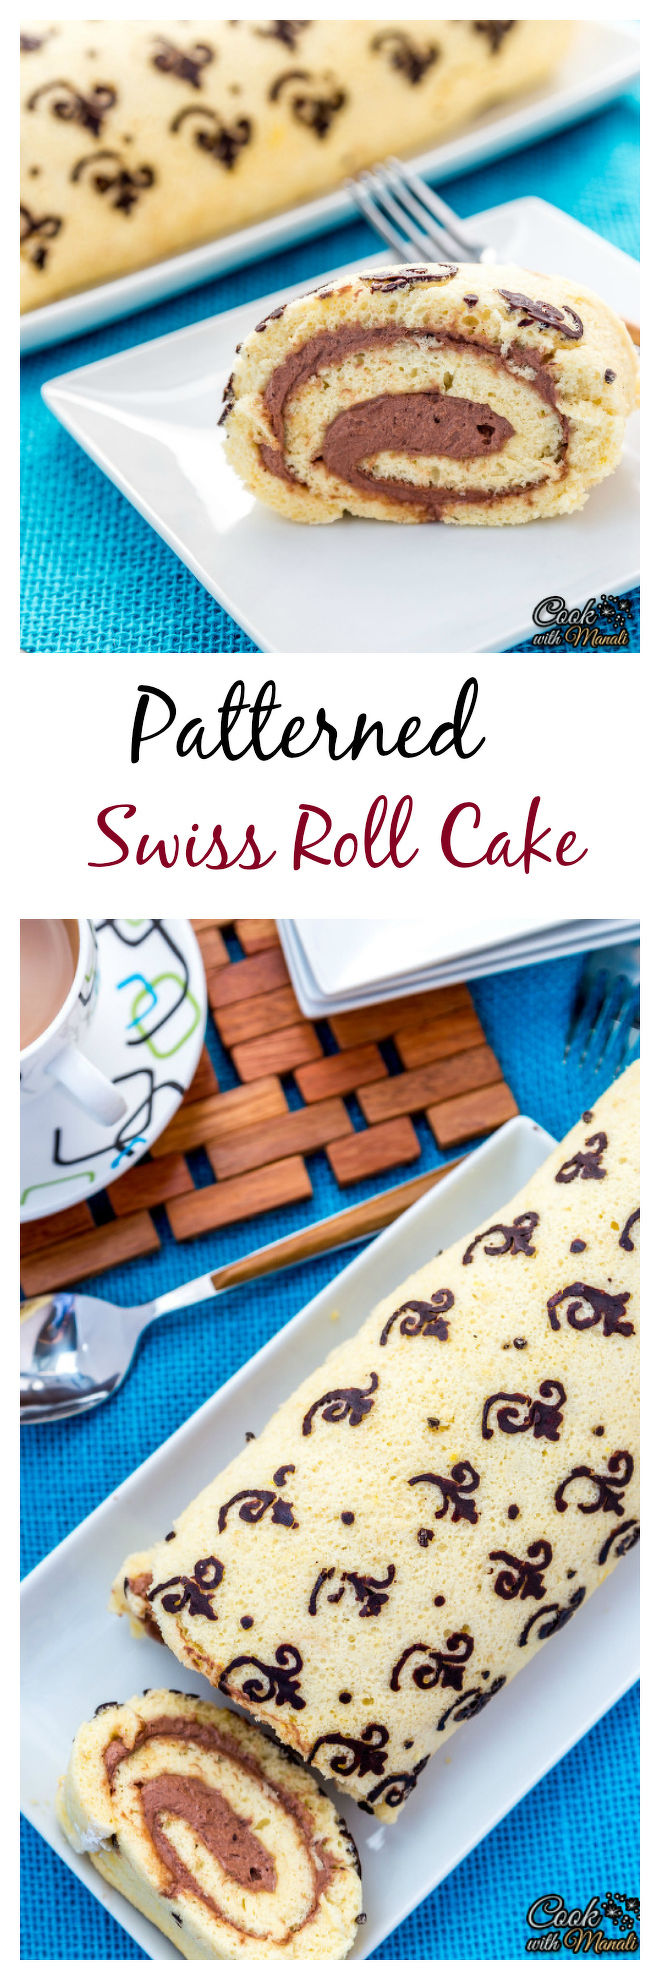 Patterned Swiss Roll Cake Collage-nocwm